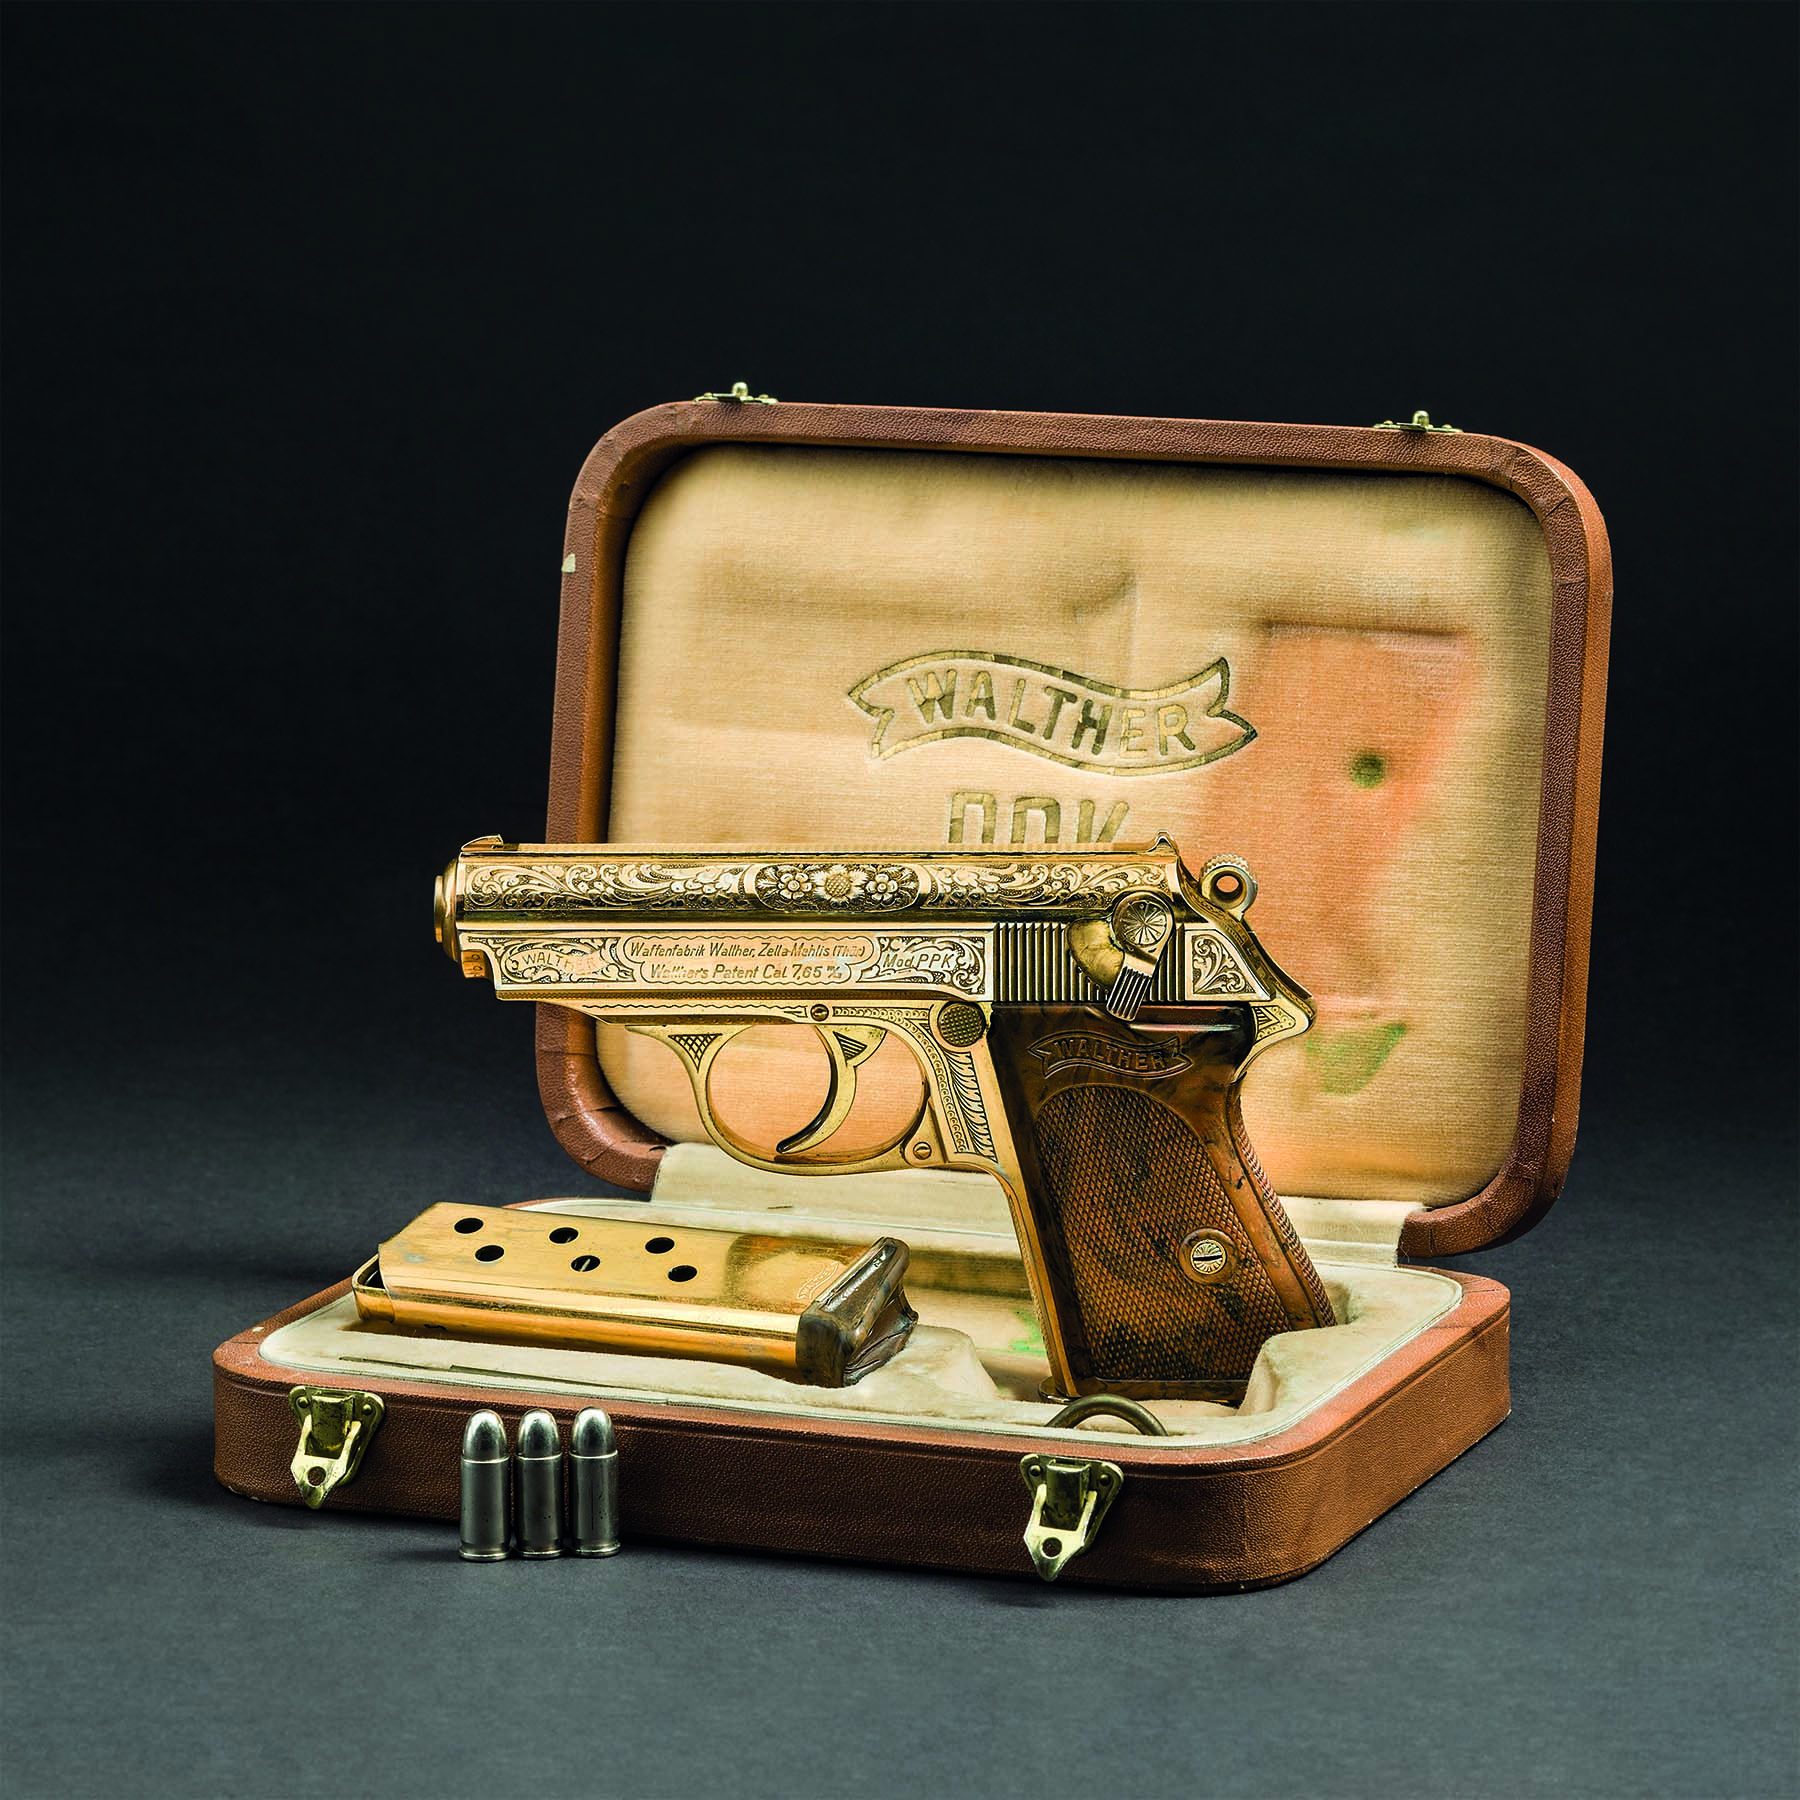 Walther PPK ZM, gold-plated version